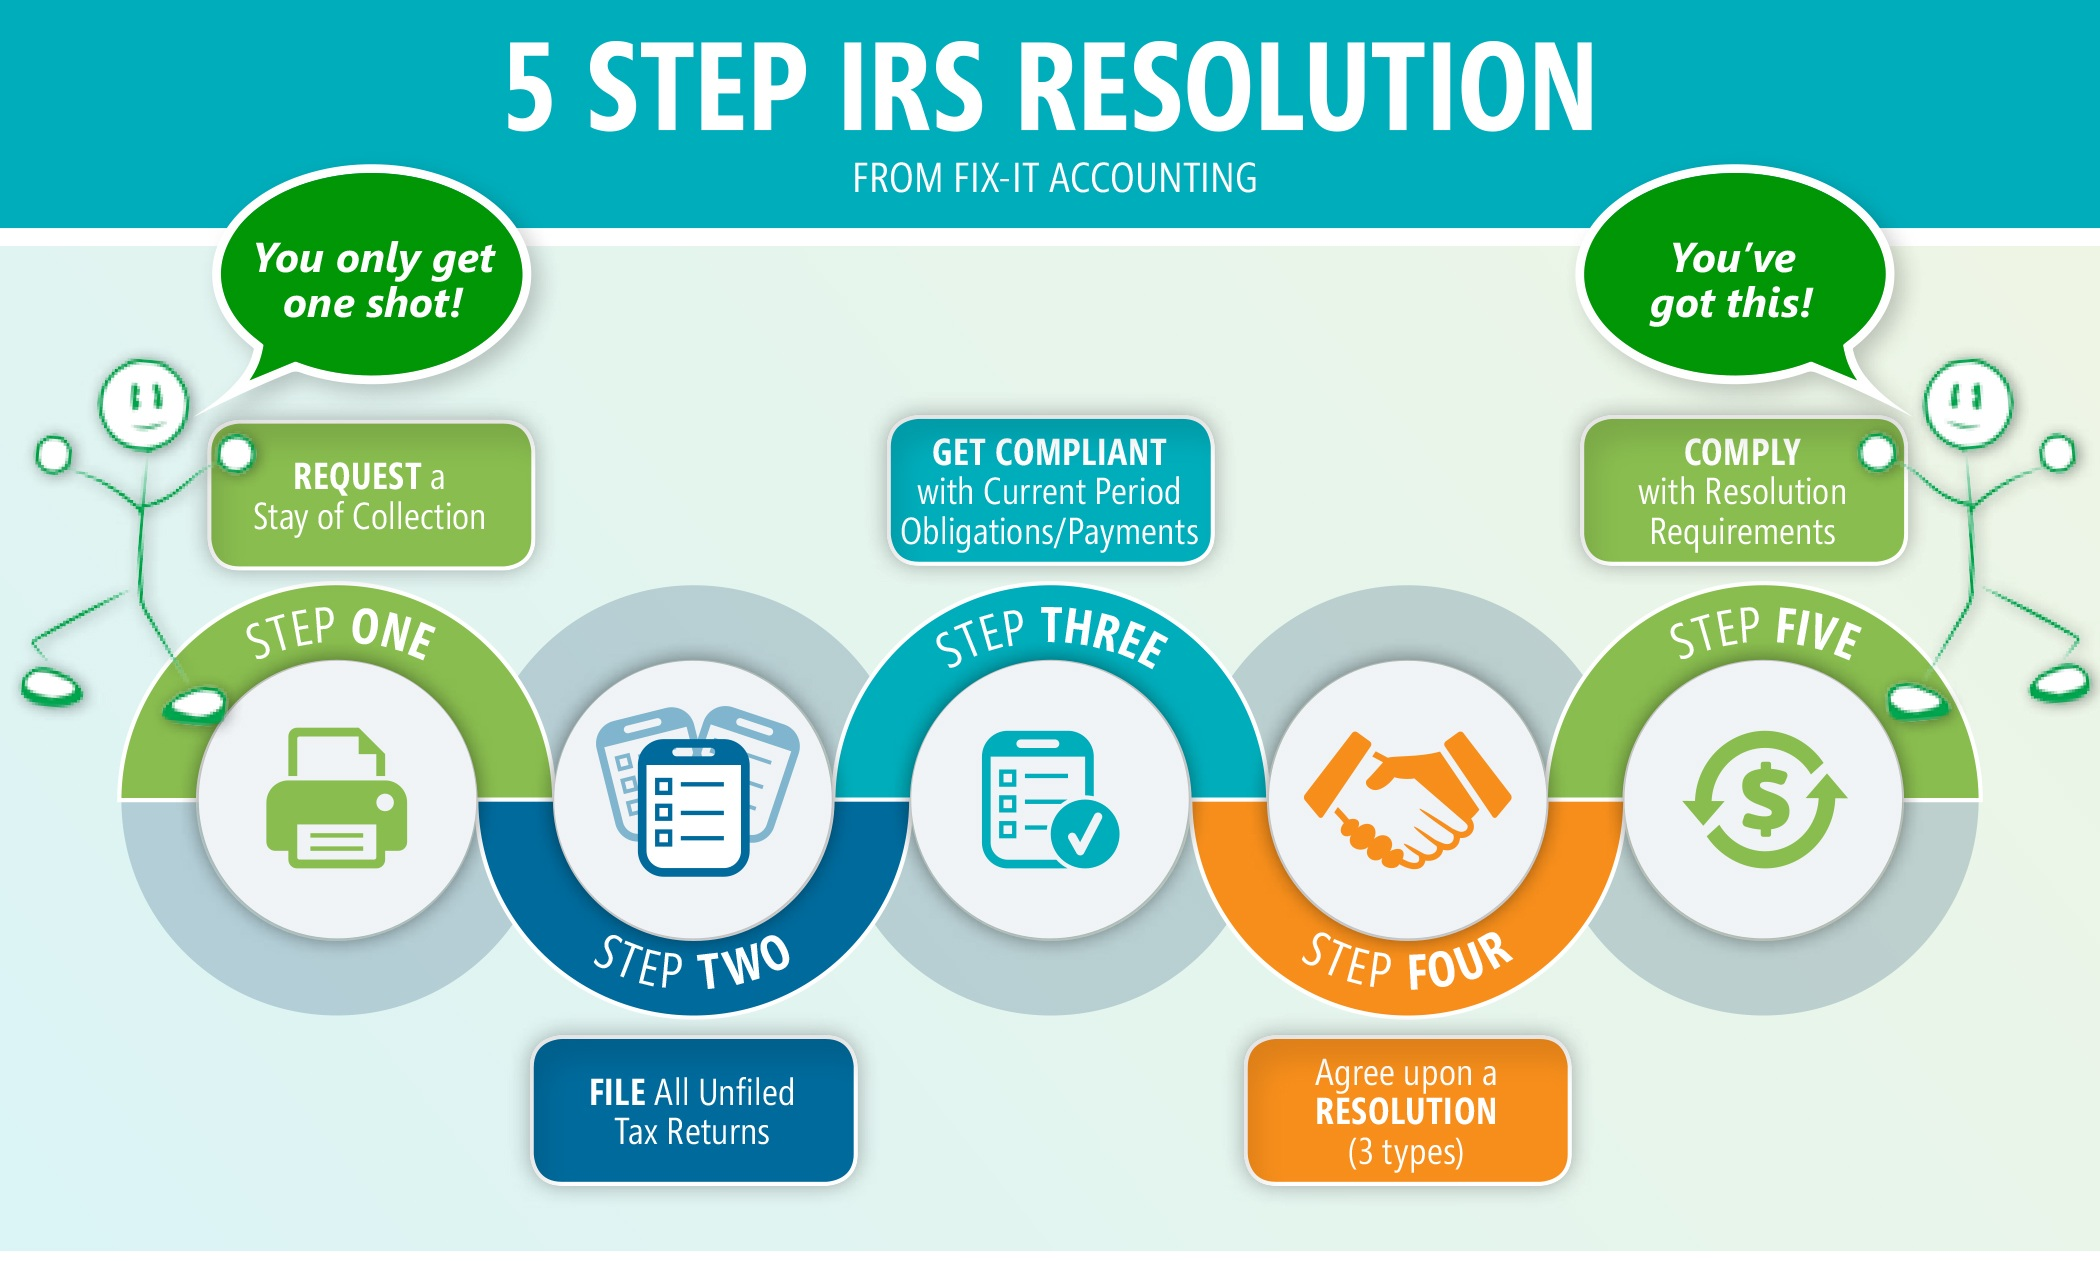 FIA_Infographic_IRS_Resolution.jpg